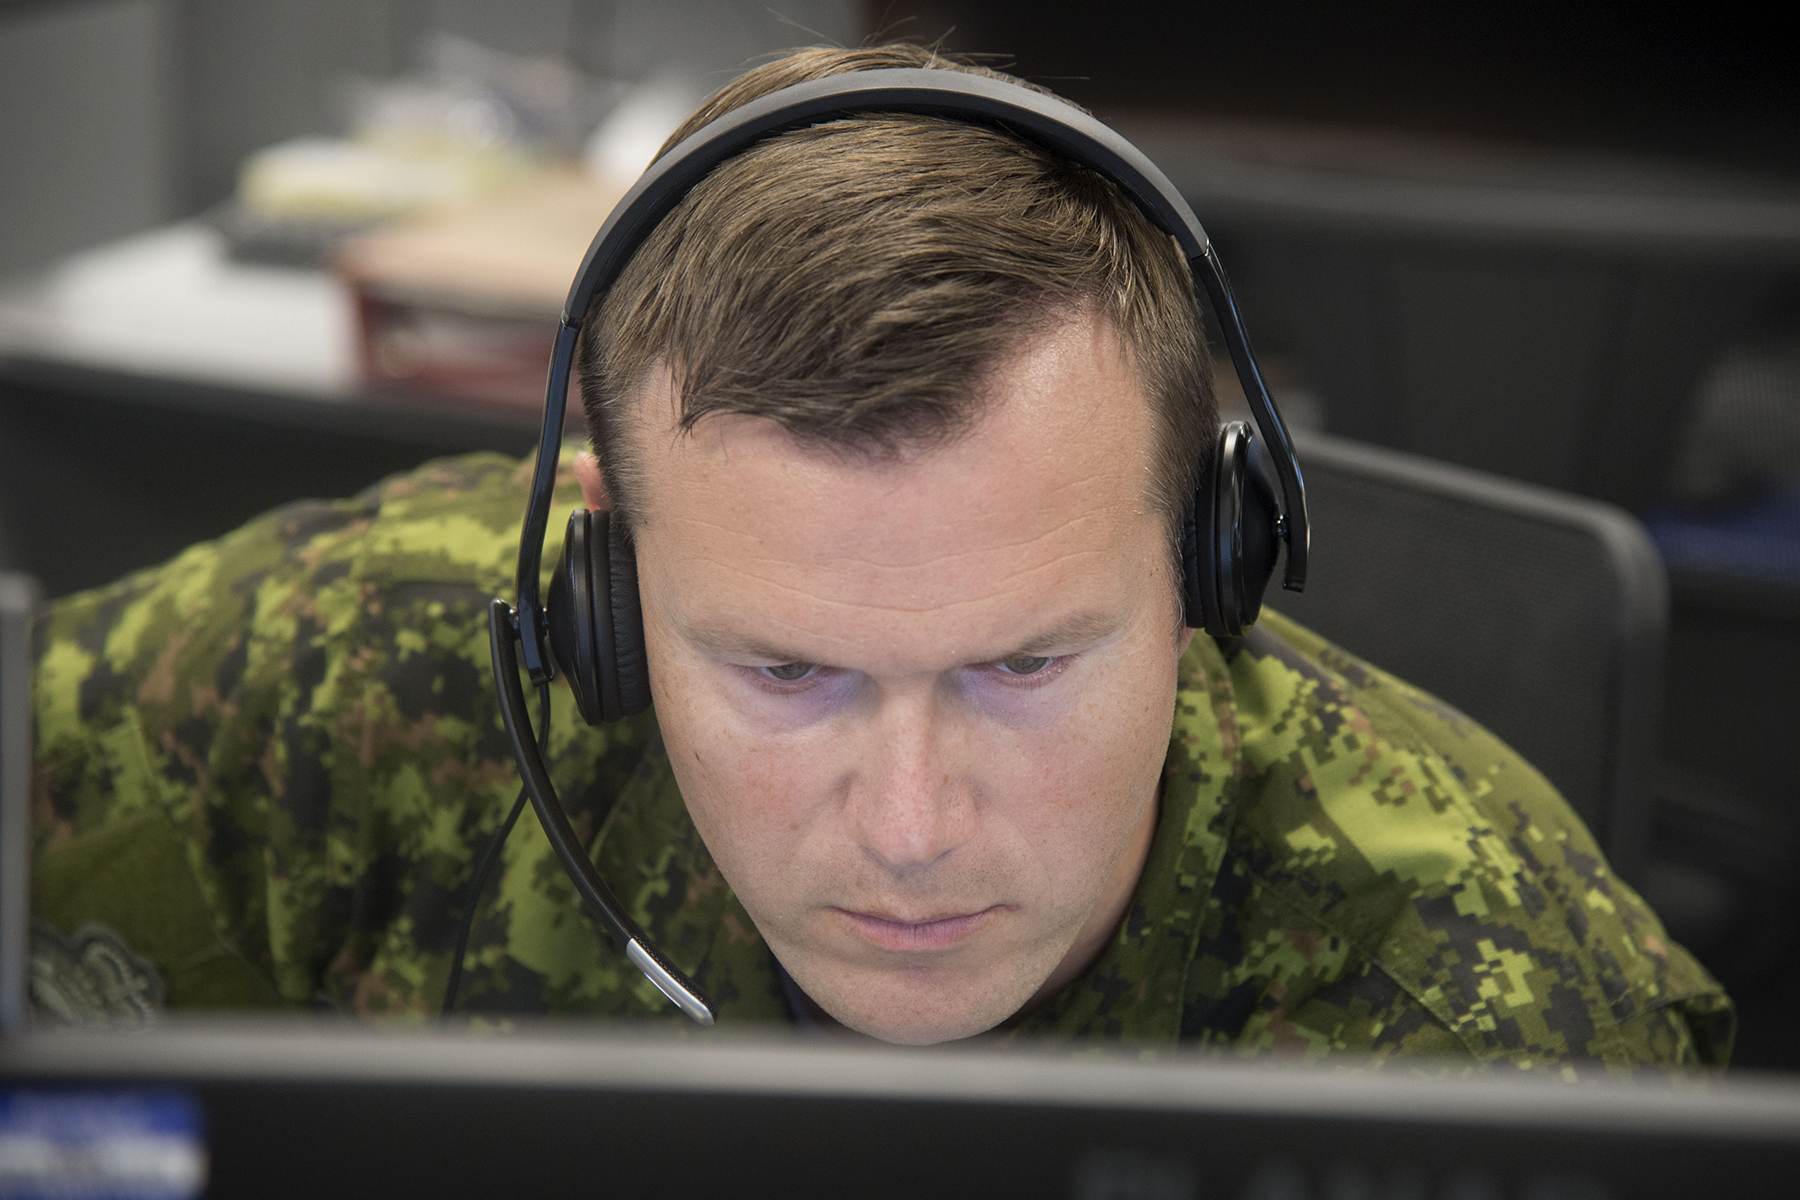 Warrant Officer Andrew Roberts, an air surveillance technician, takes part in Exercise Coalition Virtual Flag 19-4, a worldwide synthetic training exercise replicating major battlefield operations that took place from September 9 to 20, 2019, at the exercise's 22 Wing North Bay, Ontario, location. PHOTO: Corporal Robert Ouellette, NB01-2019-233-9